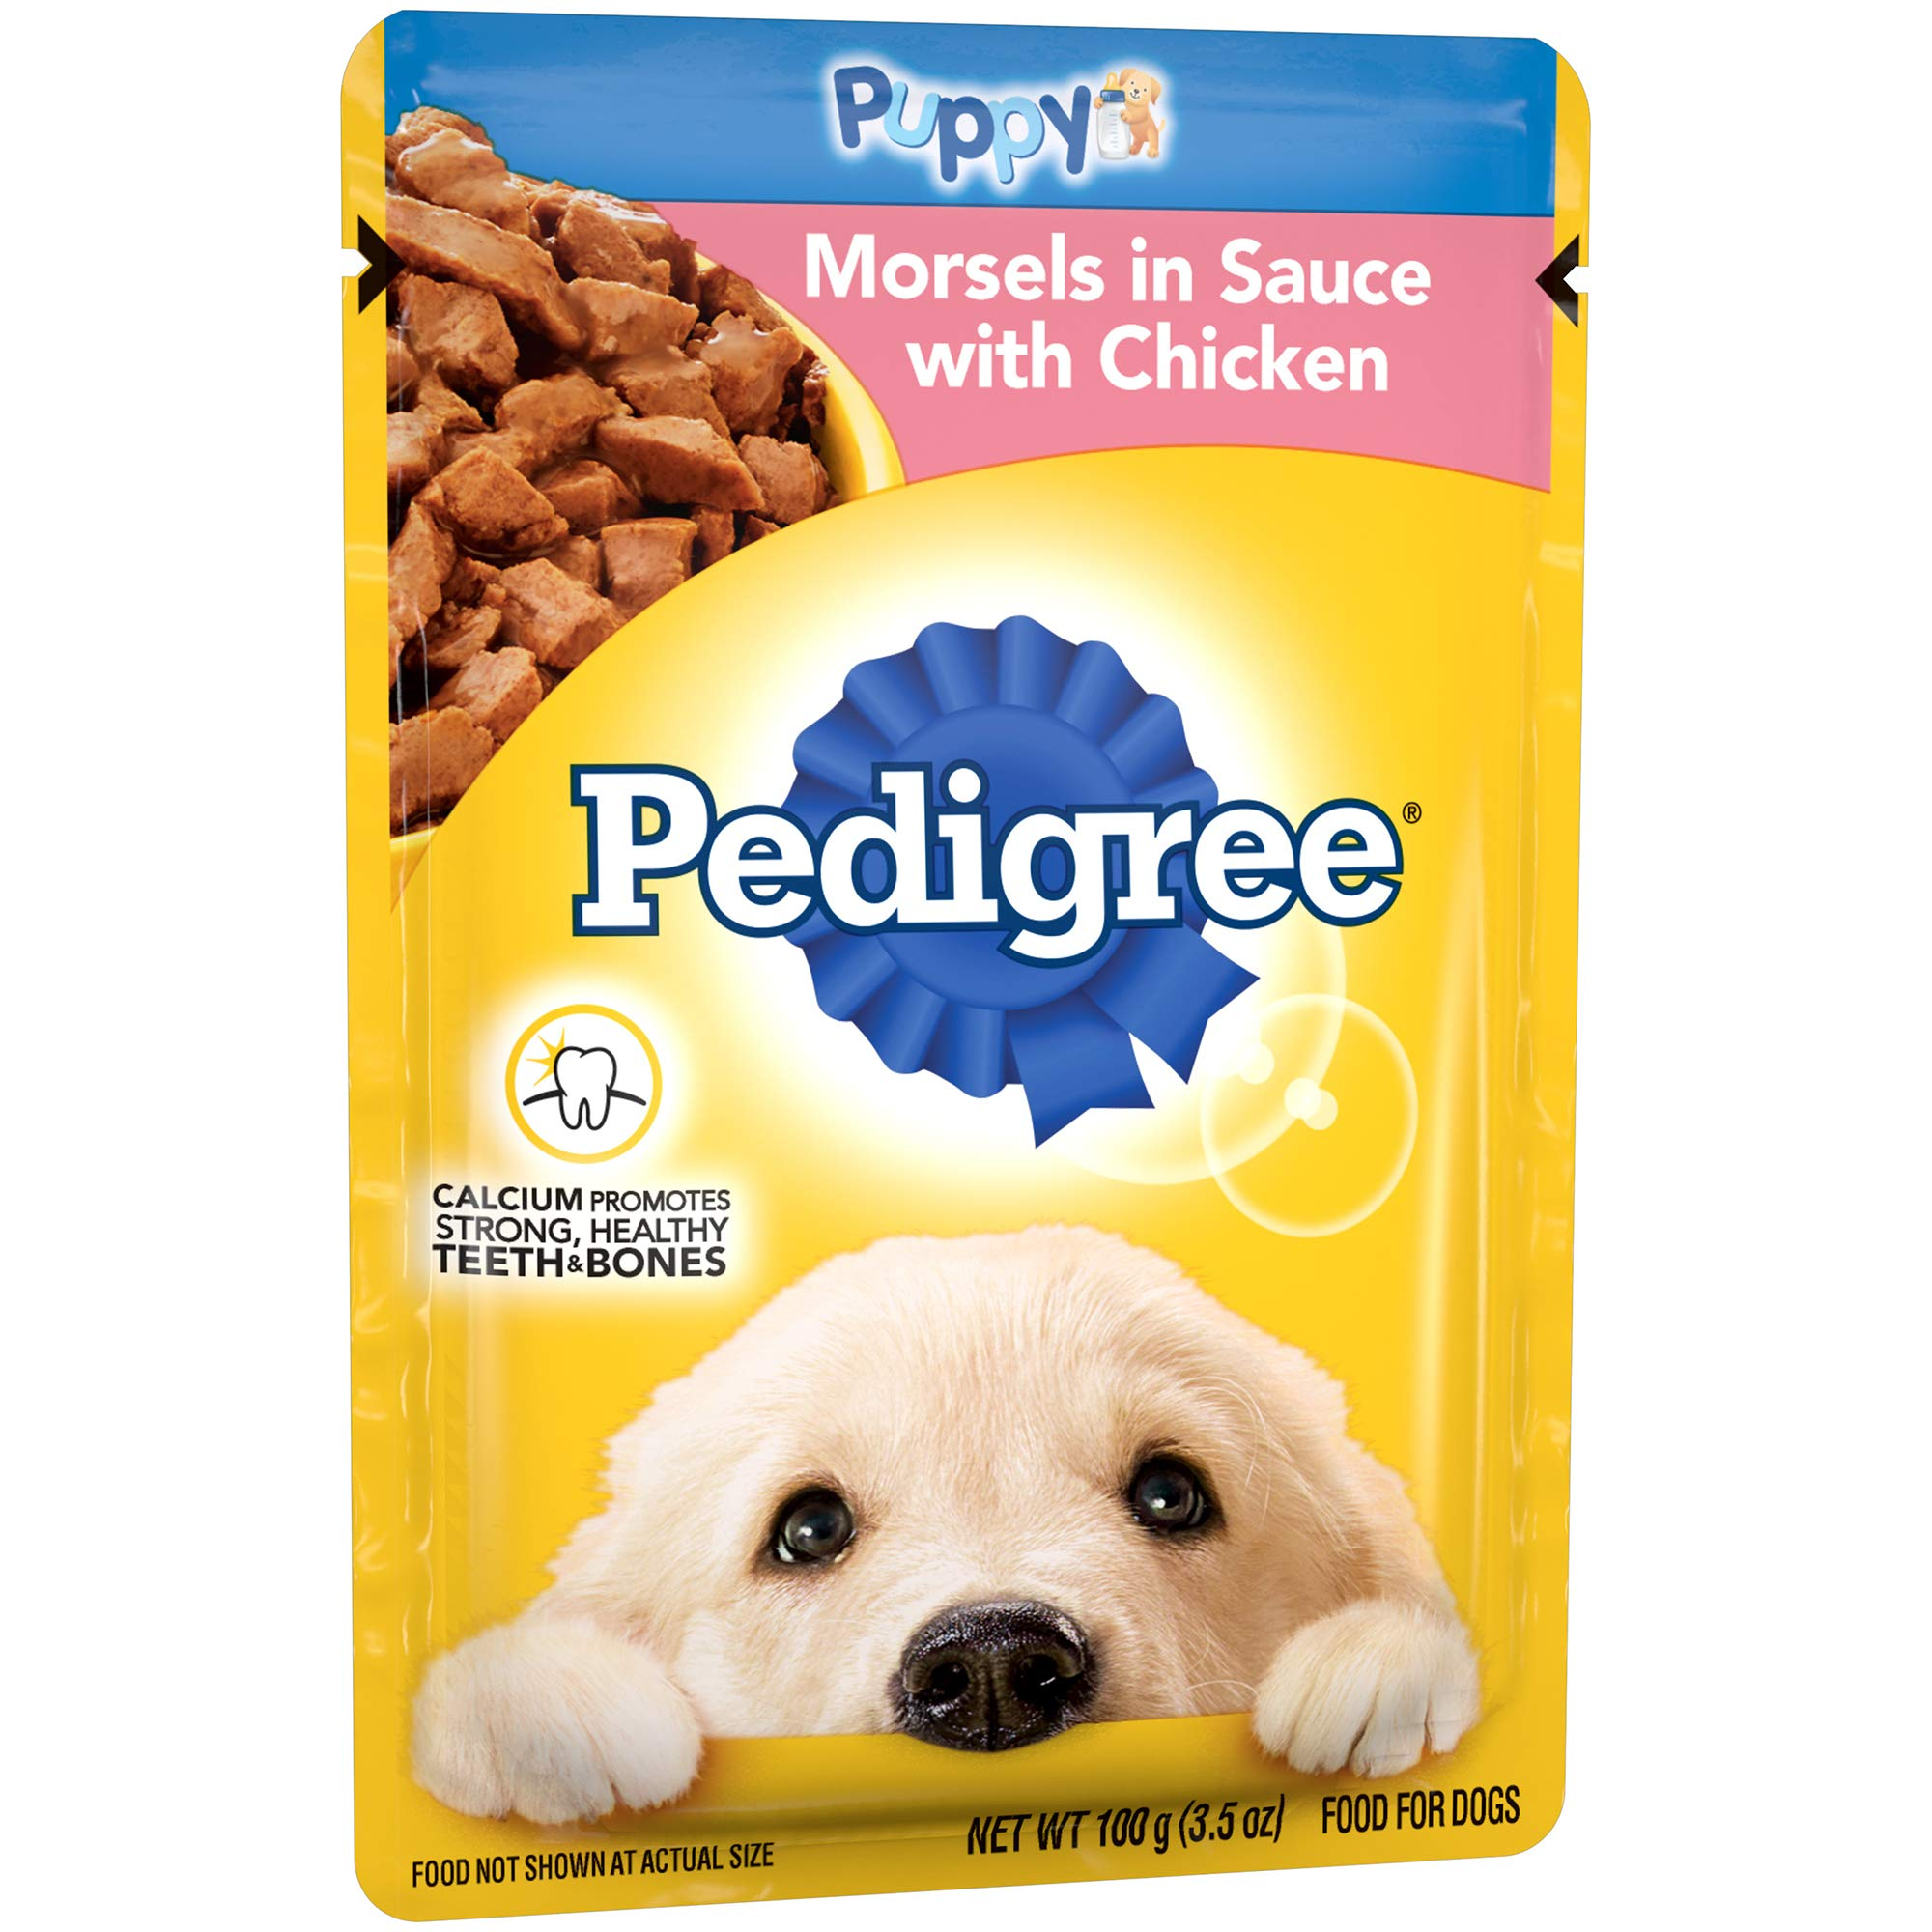 Pedigree Choice Cuts Puppy Morsels In Sauce With Chicken Wet Dog Food, (16) 3.5 Oz. Pouches by Pedigree